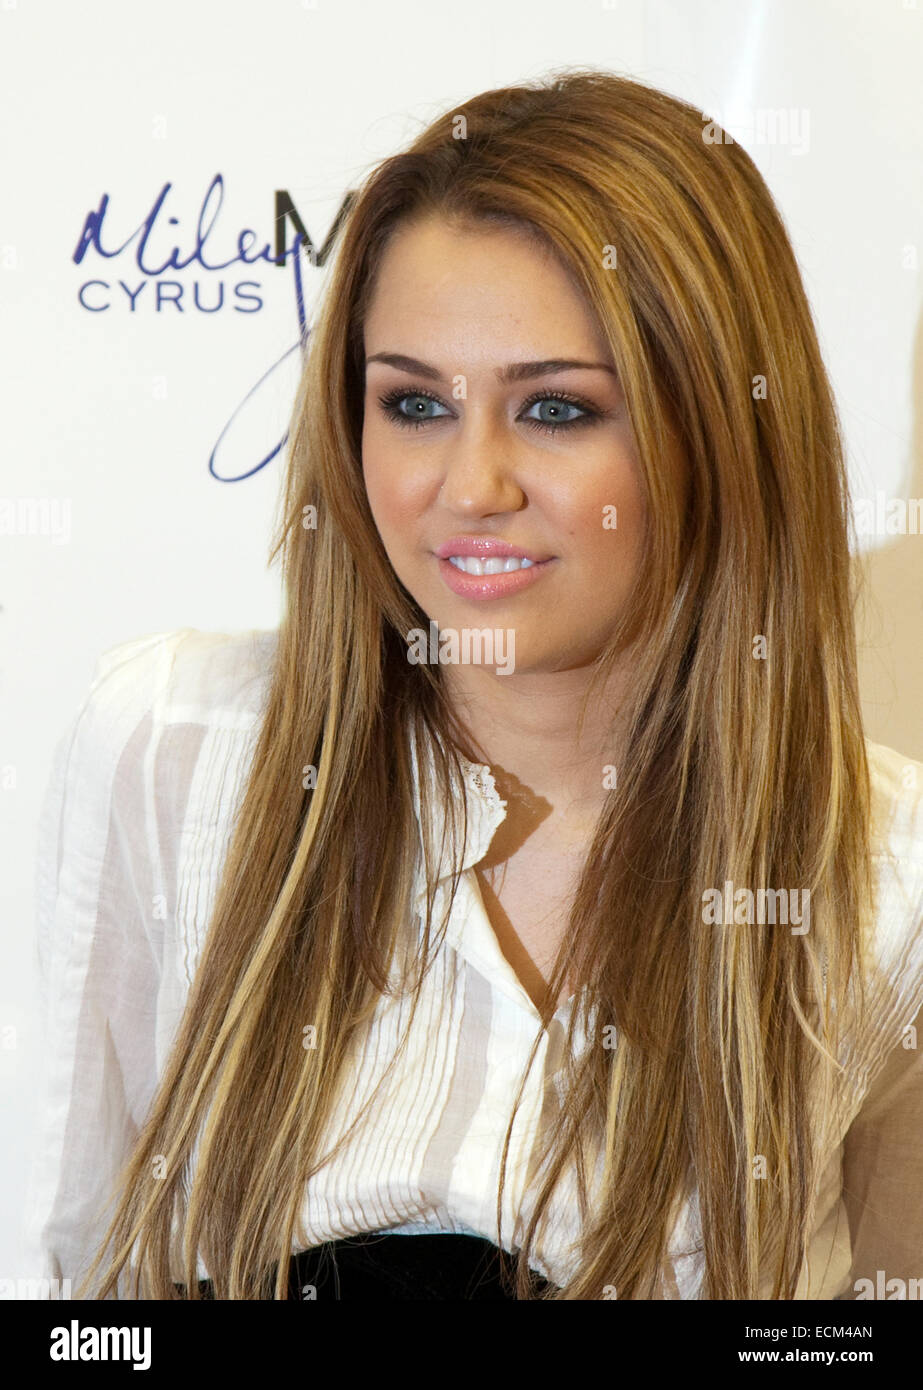 Miley Cyrus Film Star and Singer  at Asda Derby - Stock Image